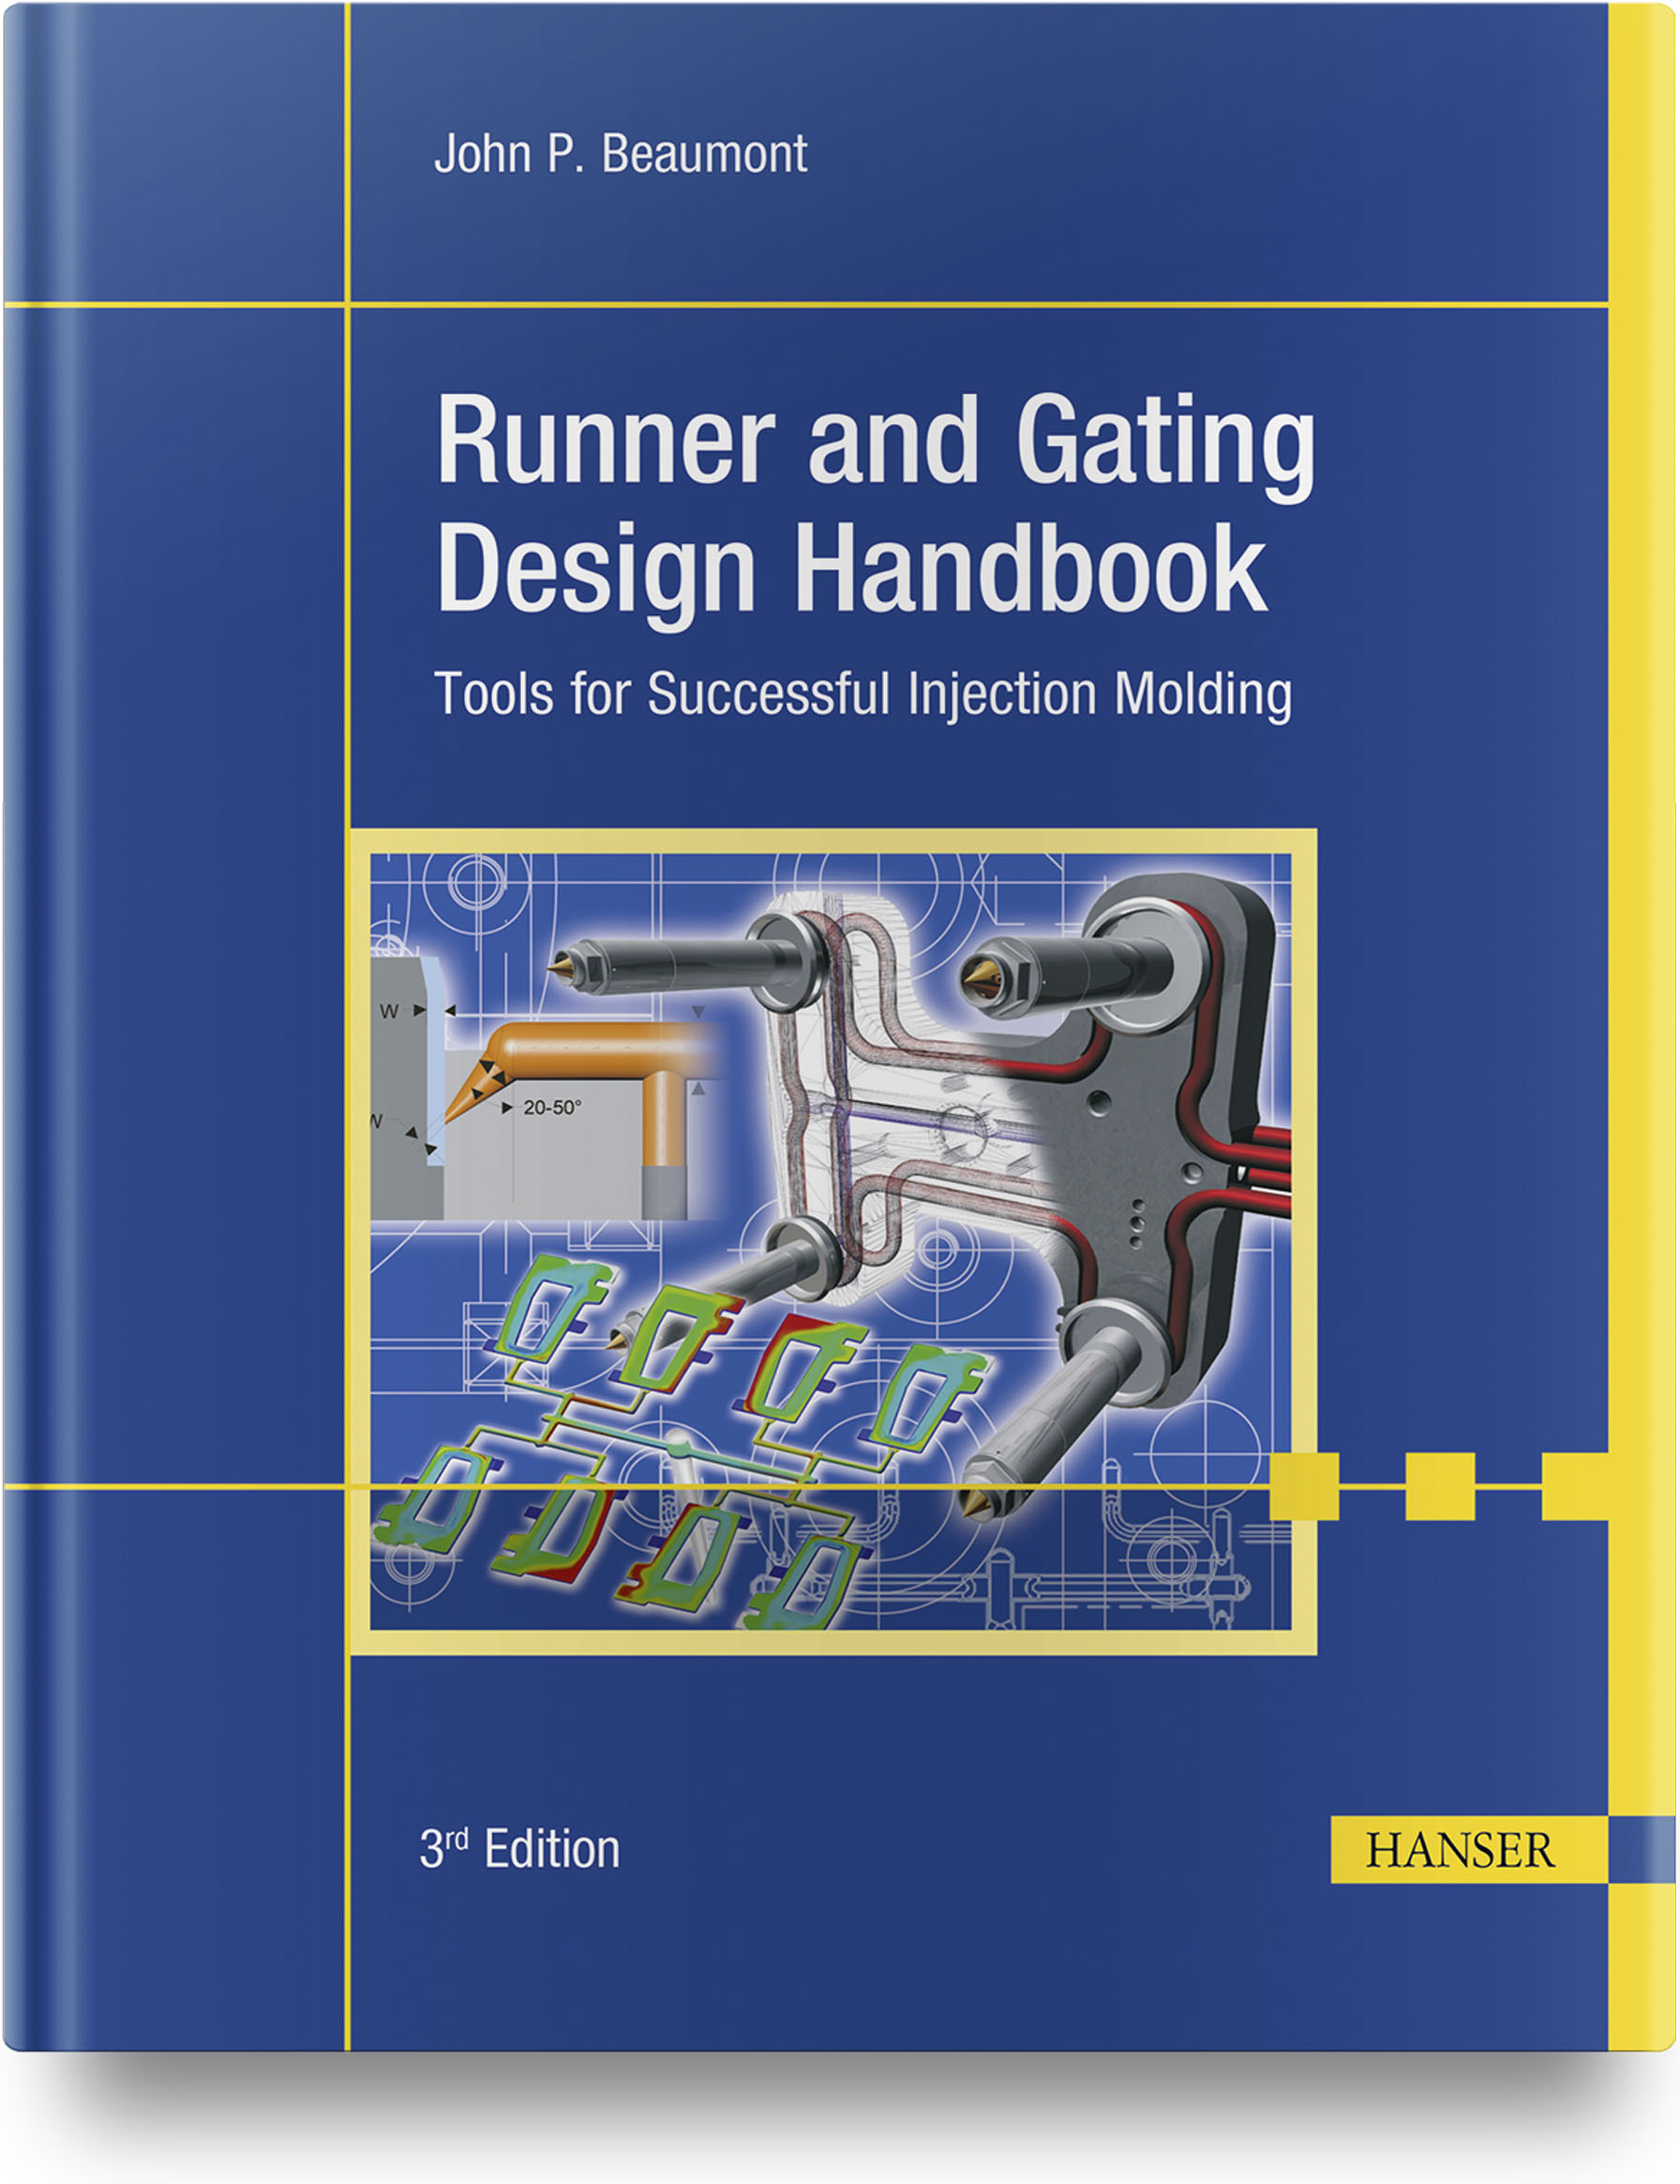 Beaumont, Runner and Gating Design Handbook, 978-1-56990-590-6